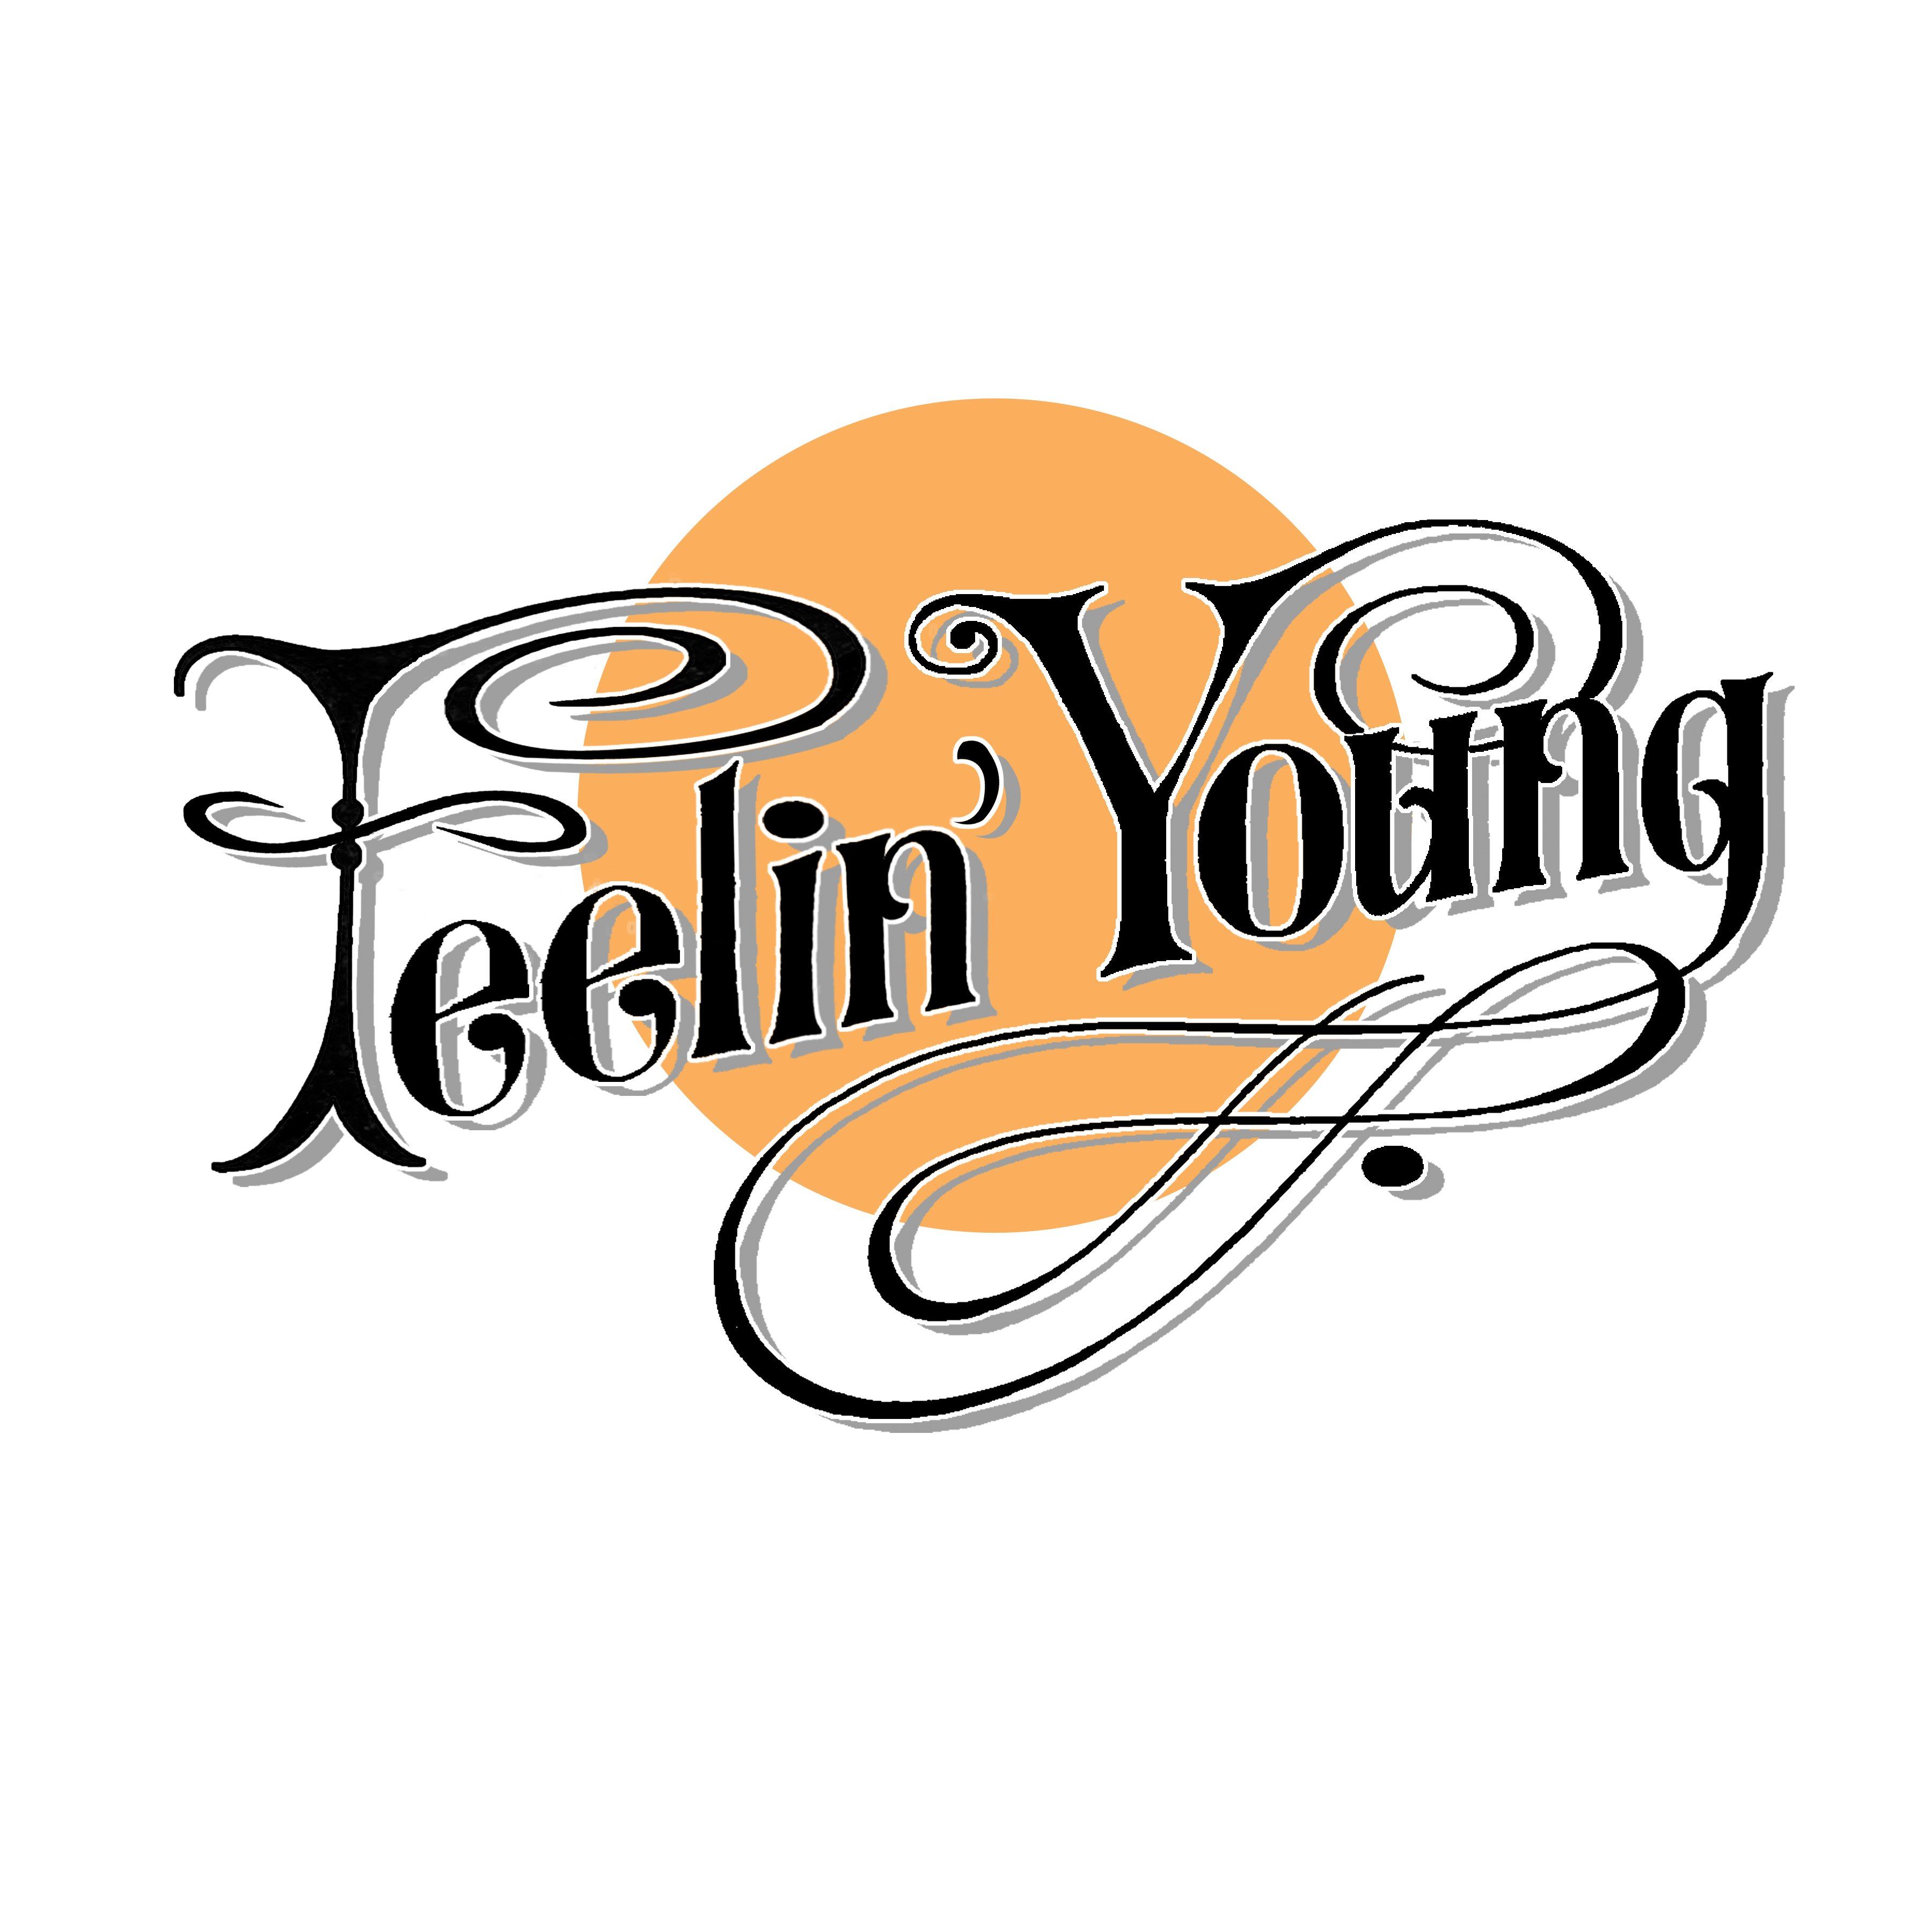 ExpiredThe Feelin Young (featuring Mike Beck)